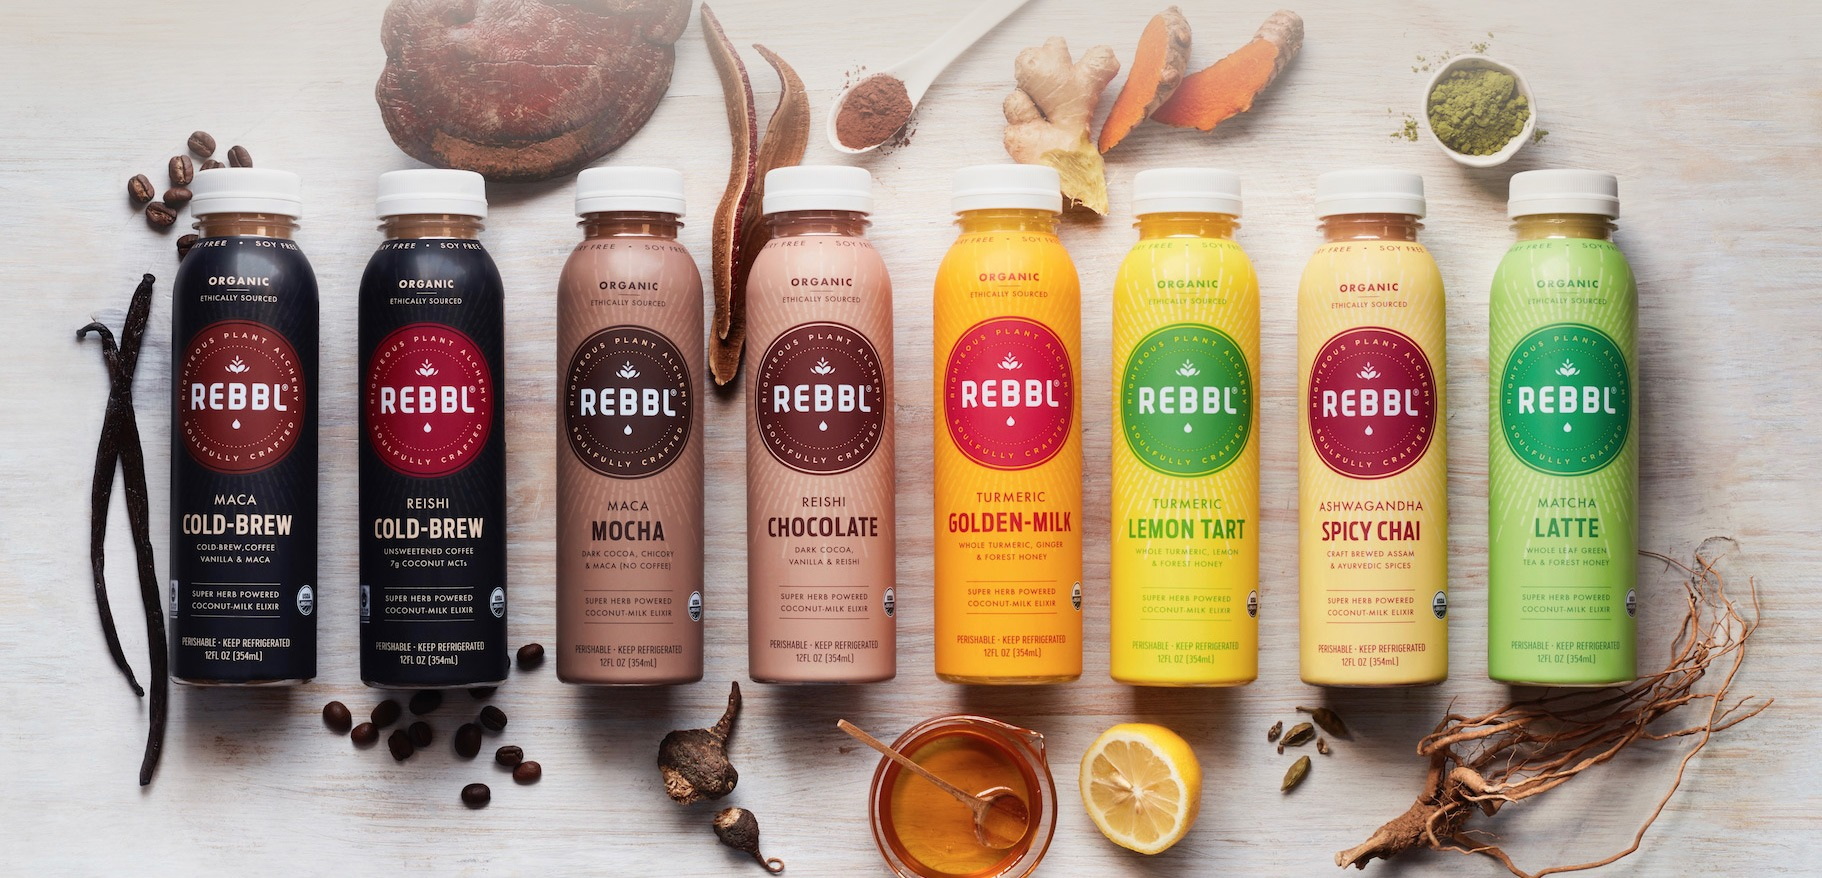 Rebbl Careers - Join Our Band of Revolutionaries For The